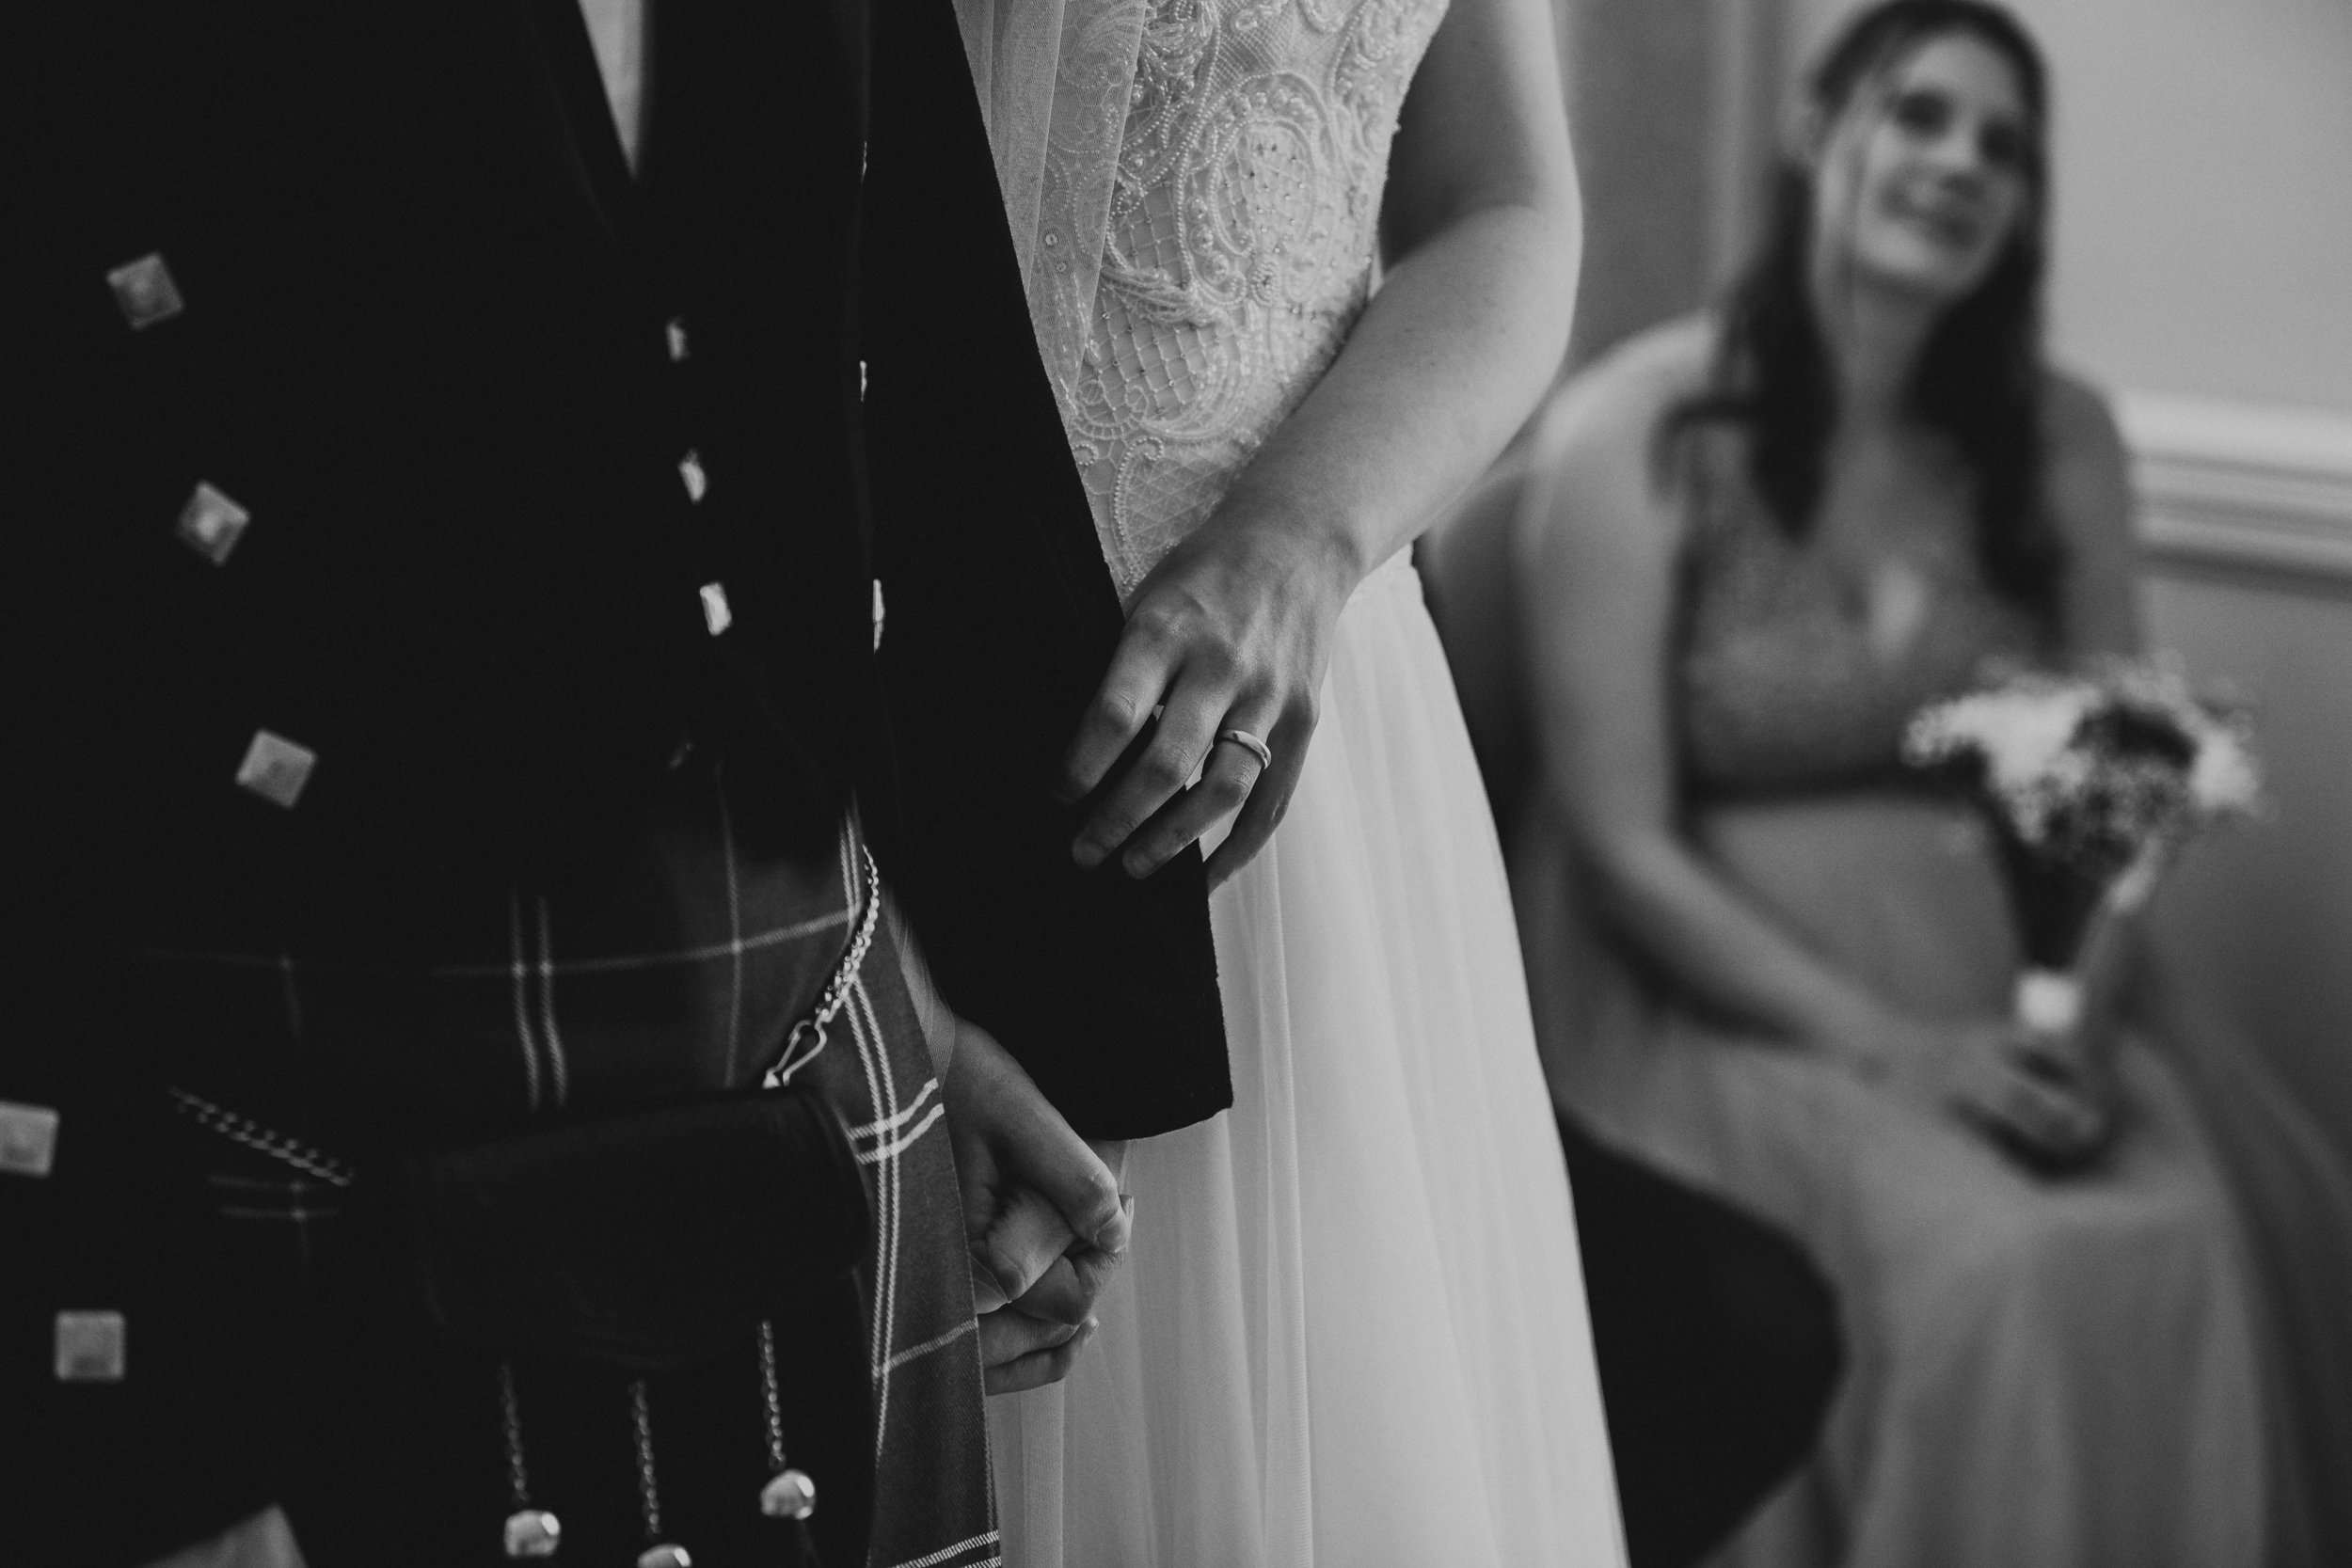 ALTERNATIVE_GLASGOW_CITY_WEDDING_PJ_PHILLIPS_PHOTOGRAPHY_WEDDING_PHOTOGRAPHY_51.jpg